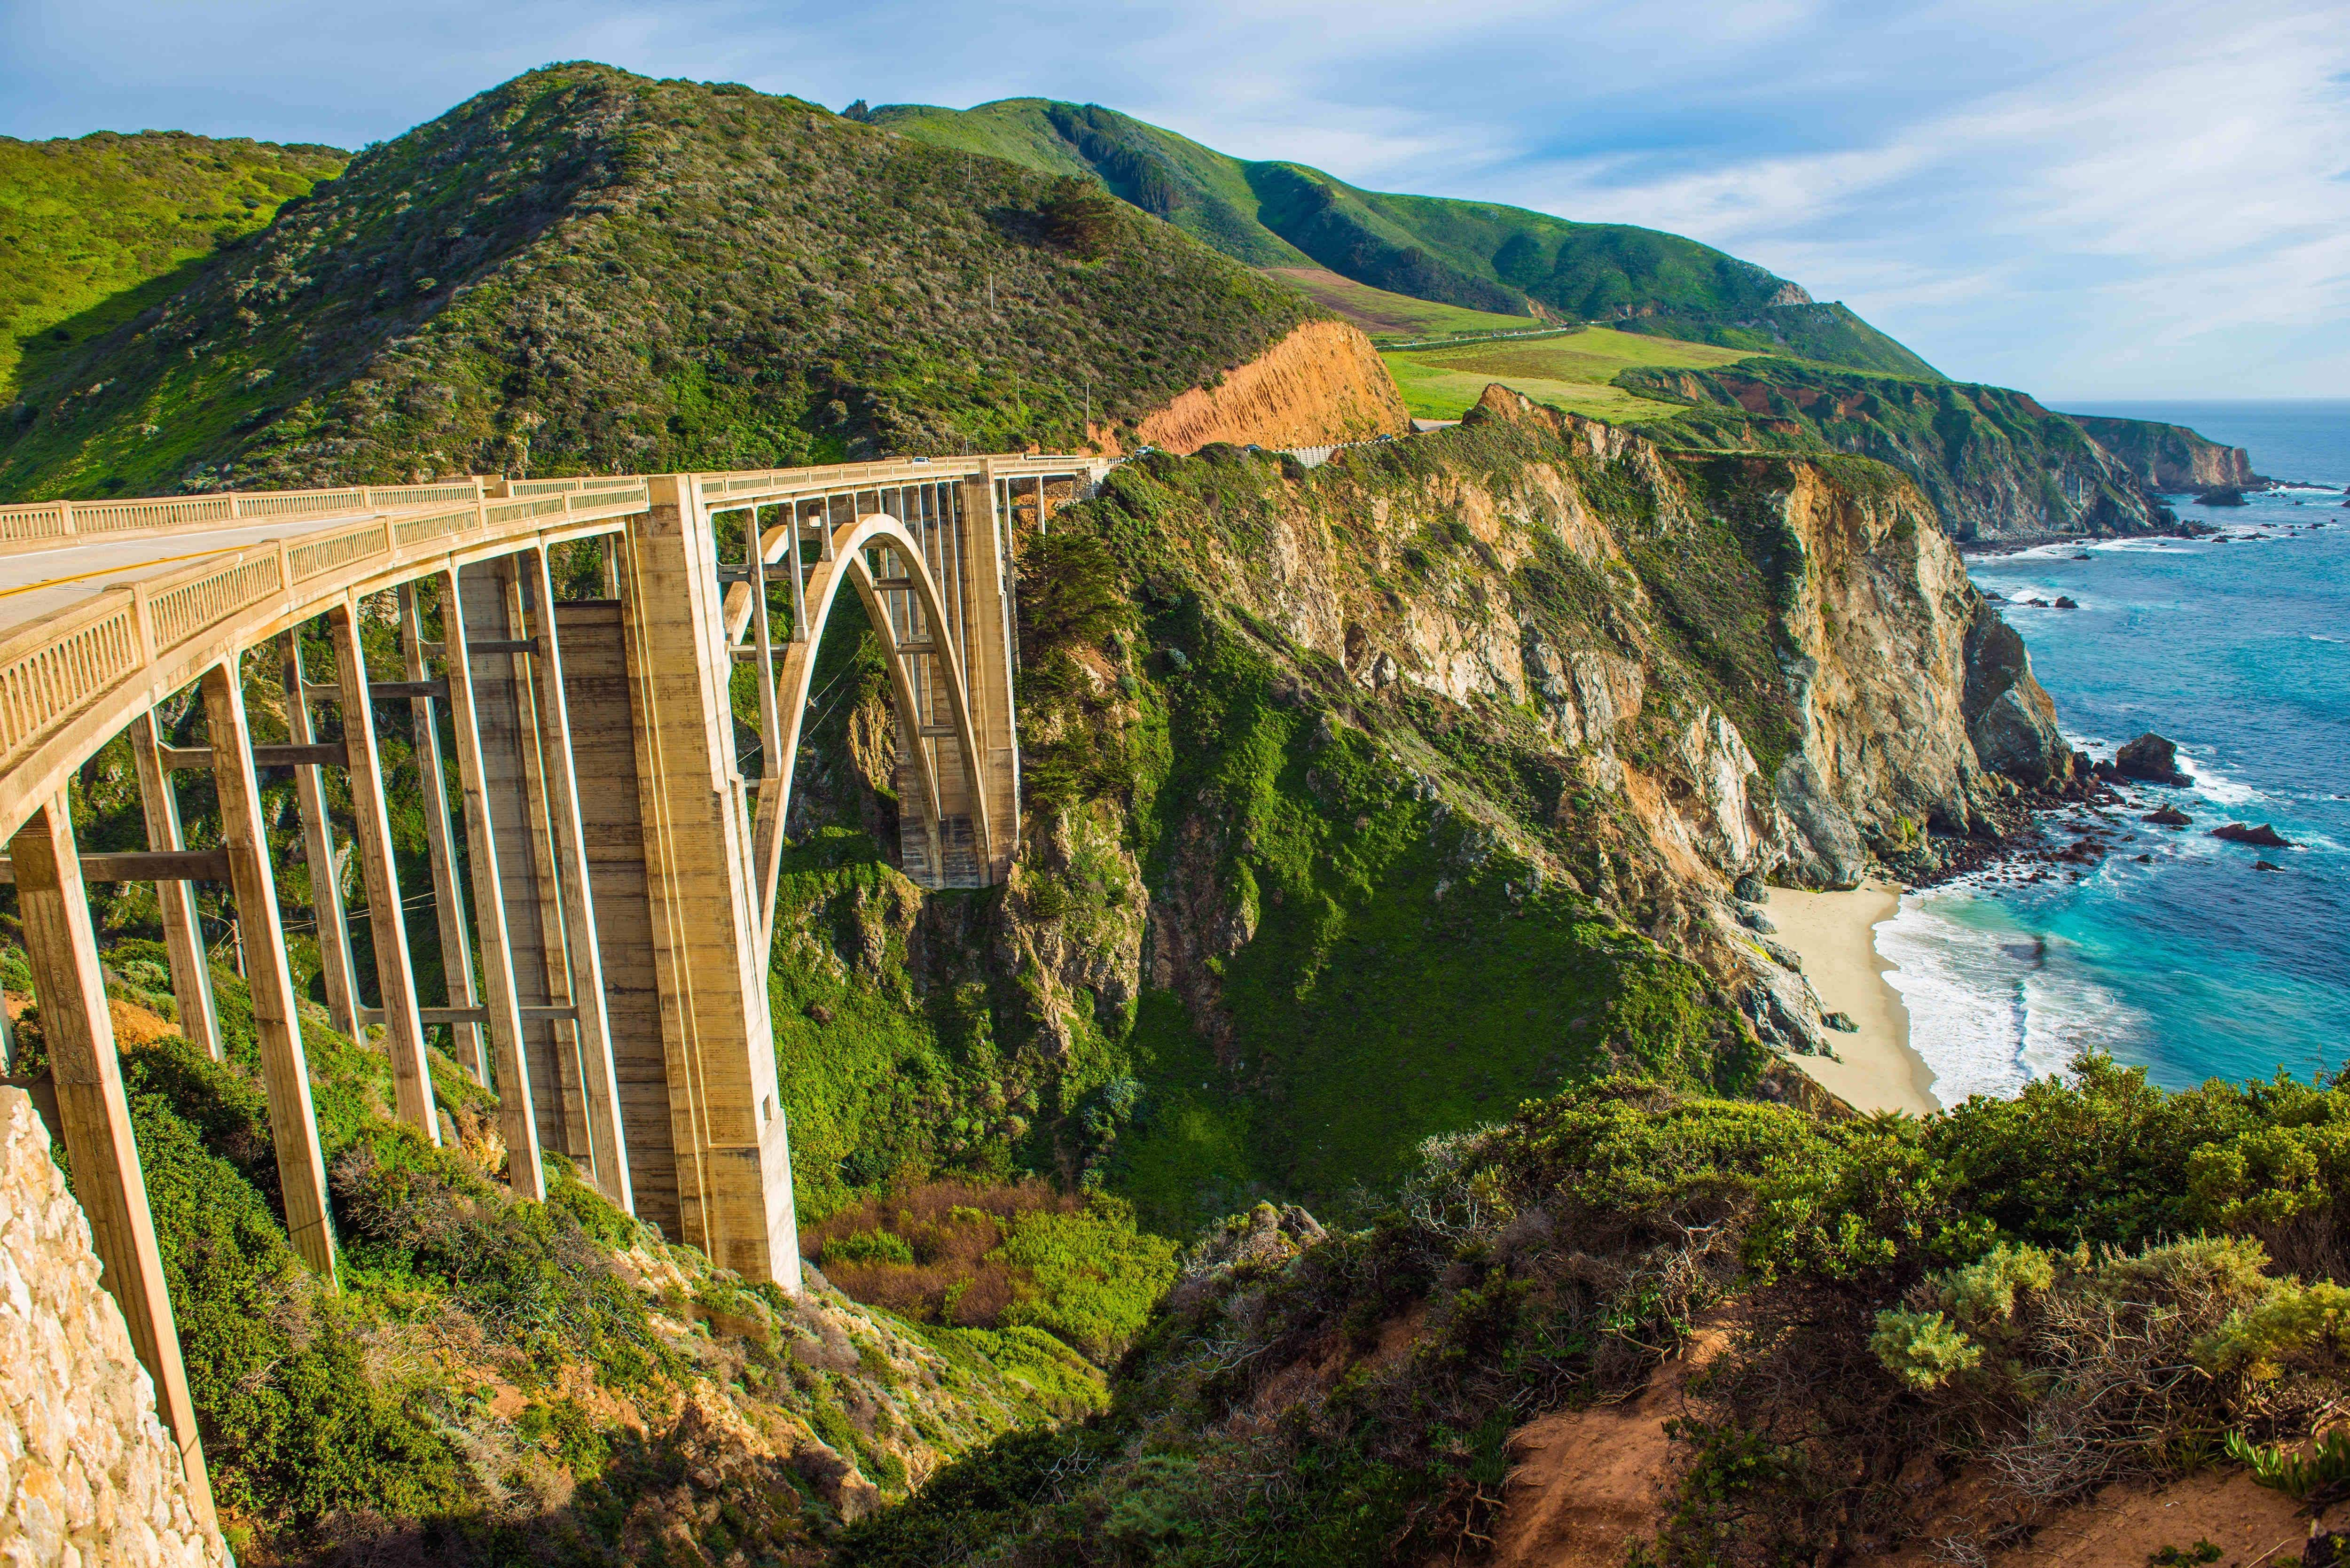 Pacific Coast Highway closures means visitors can bike 'Big Sur Island'